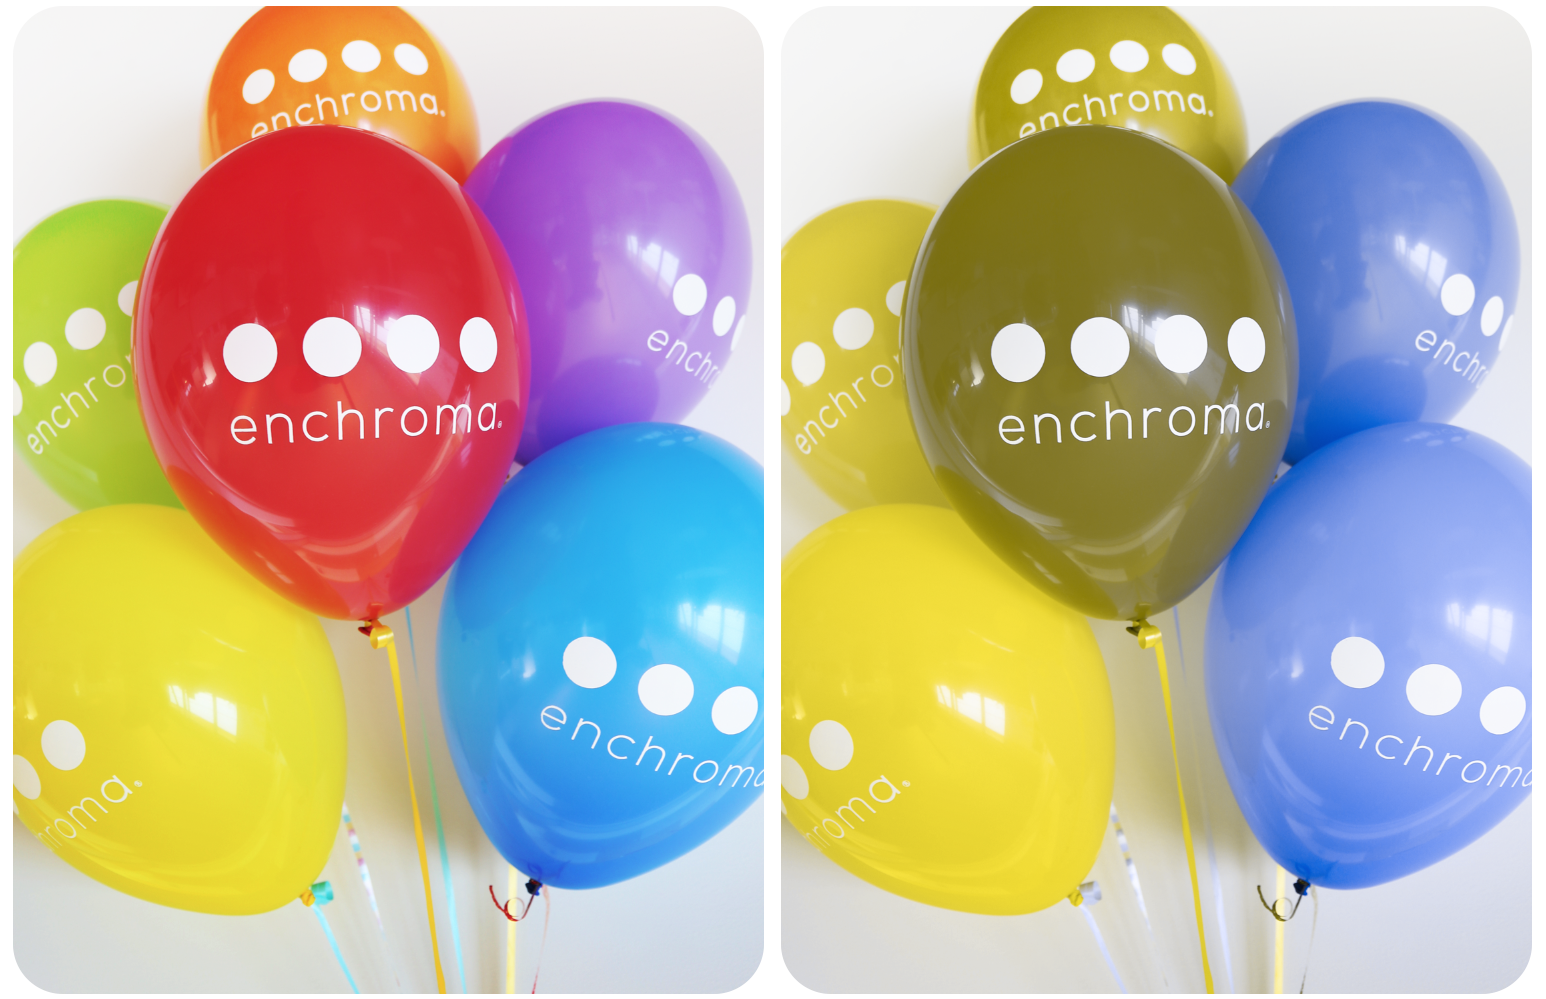 xenchroma-balloons.png.pagespeed.ic_.Oz2sDXBdHd.png